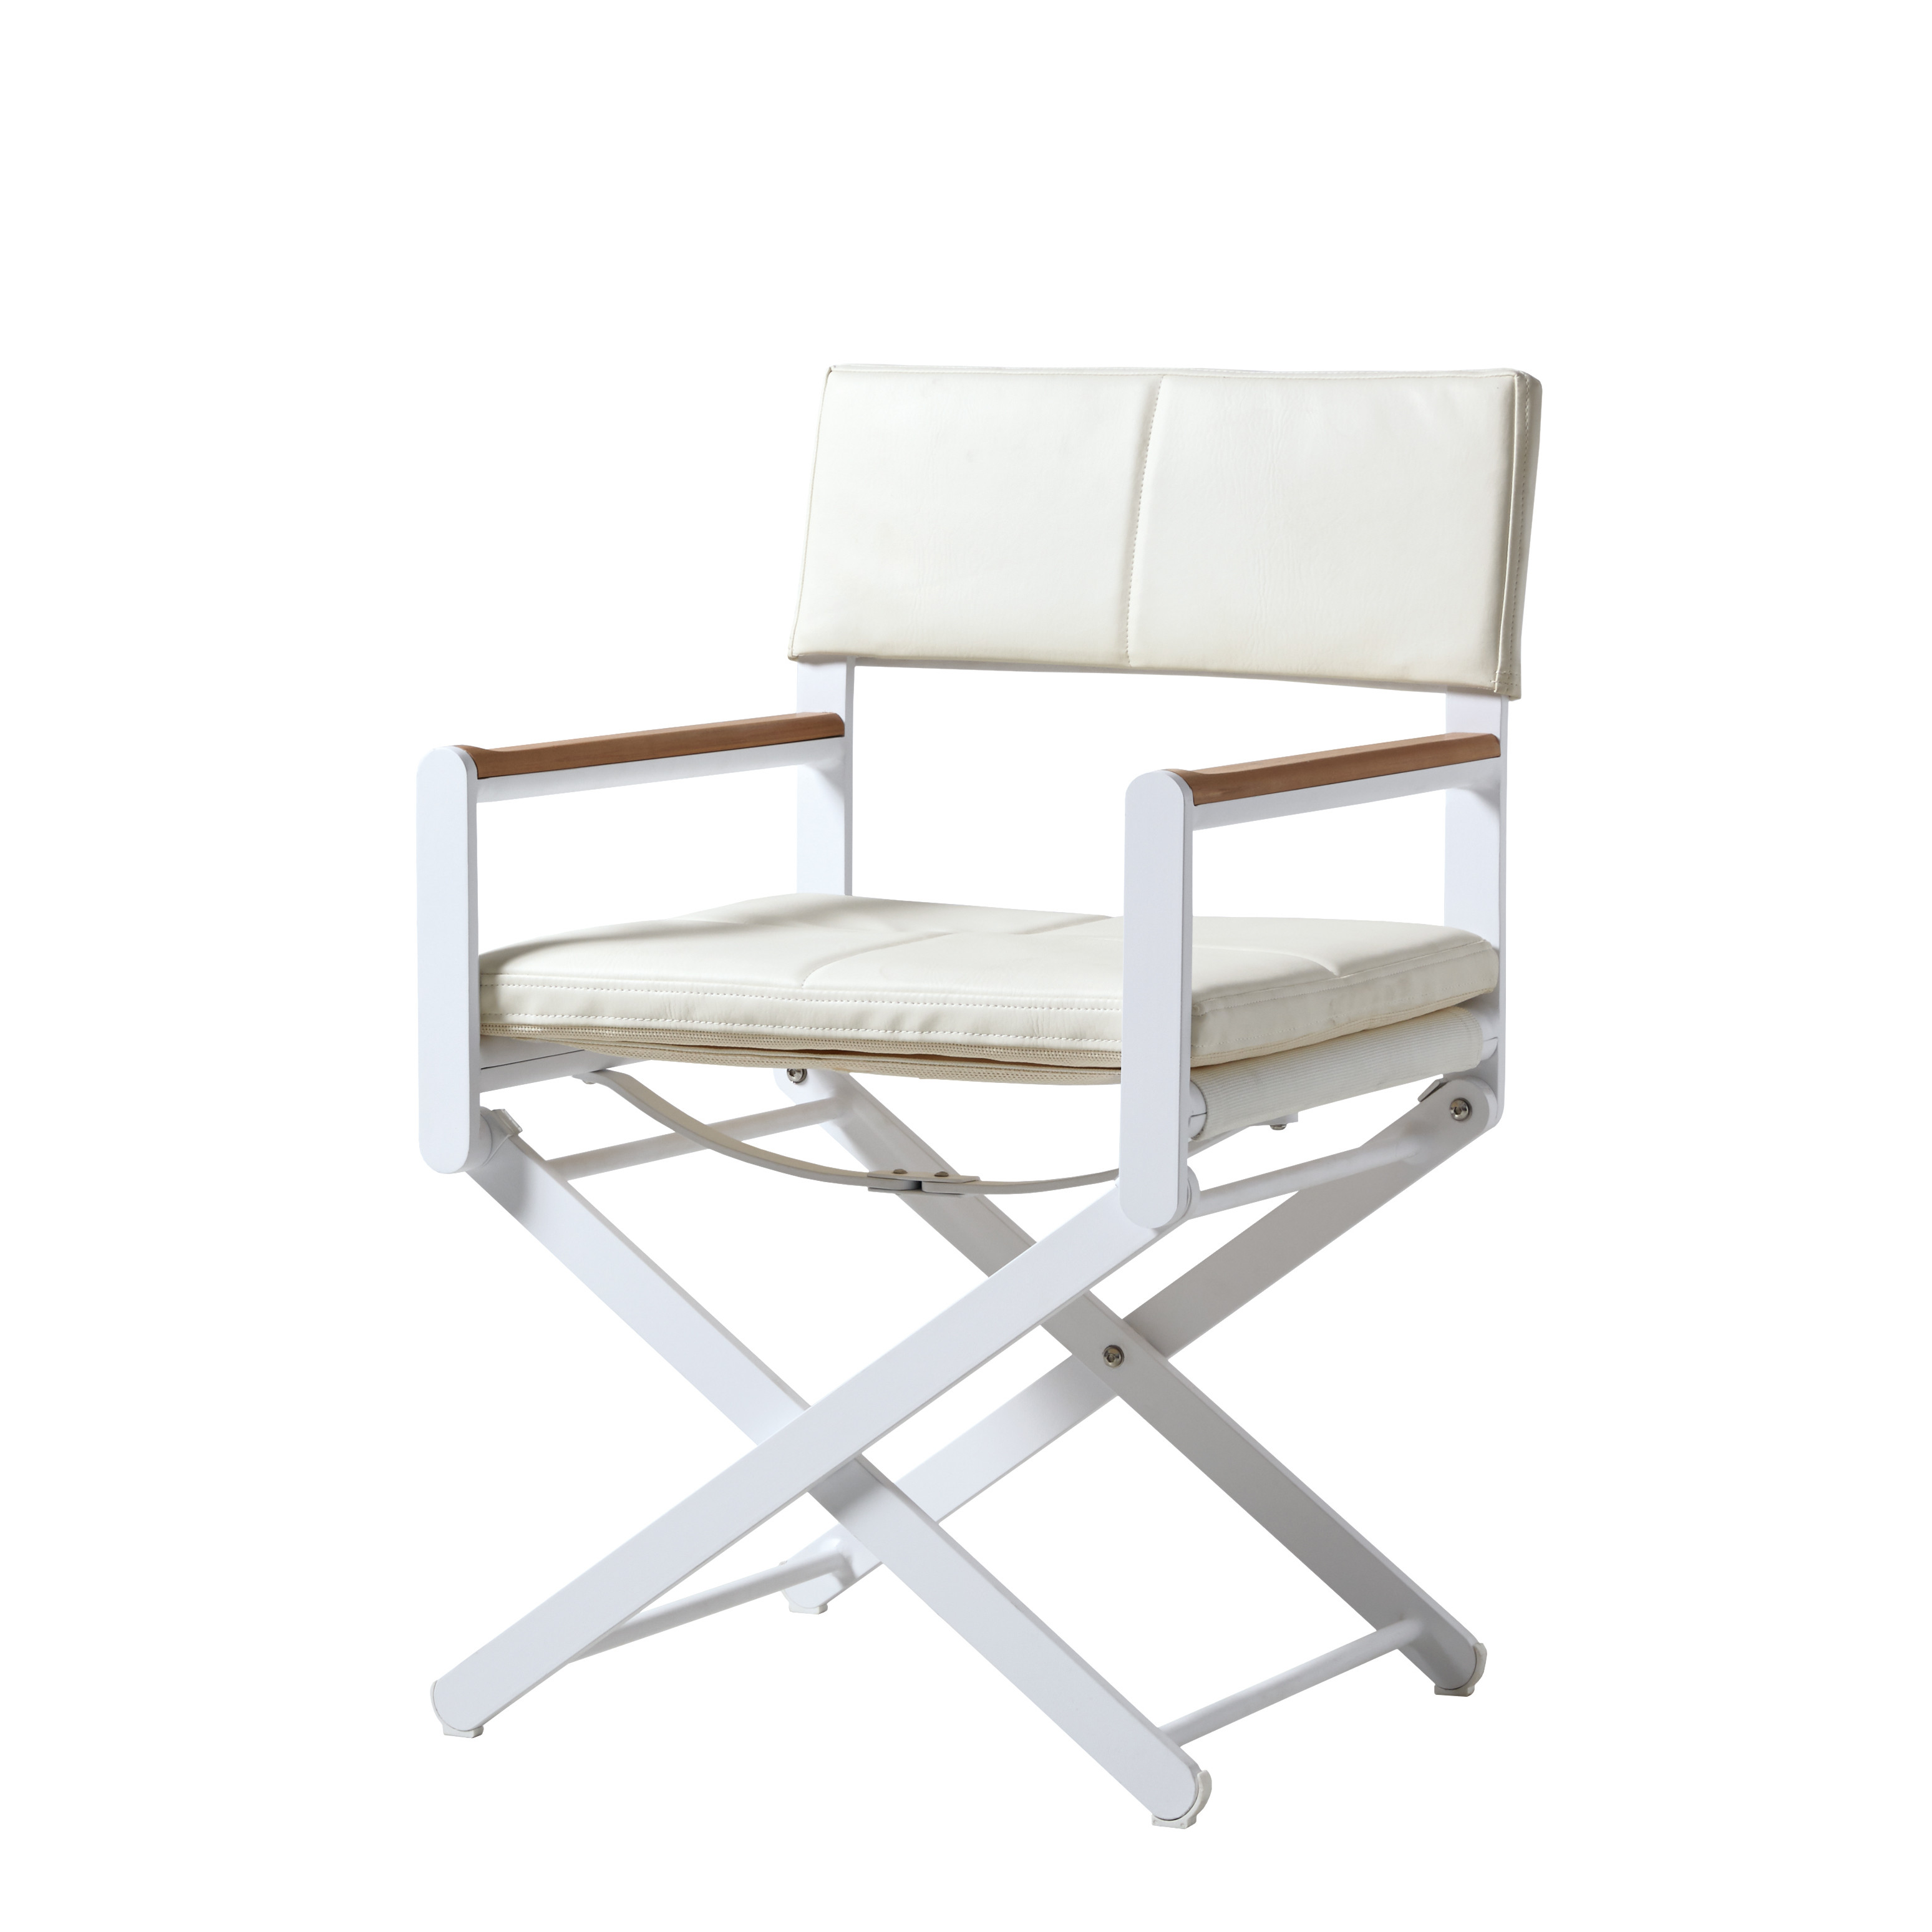 Replacement Canvas for Directors Chair | Directors Chair Replacement Canvas | Tall Folding Directors Chair